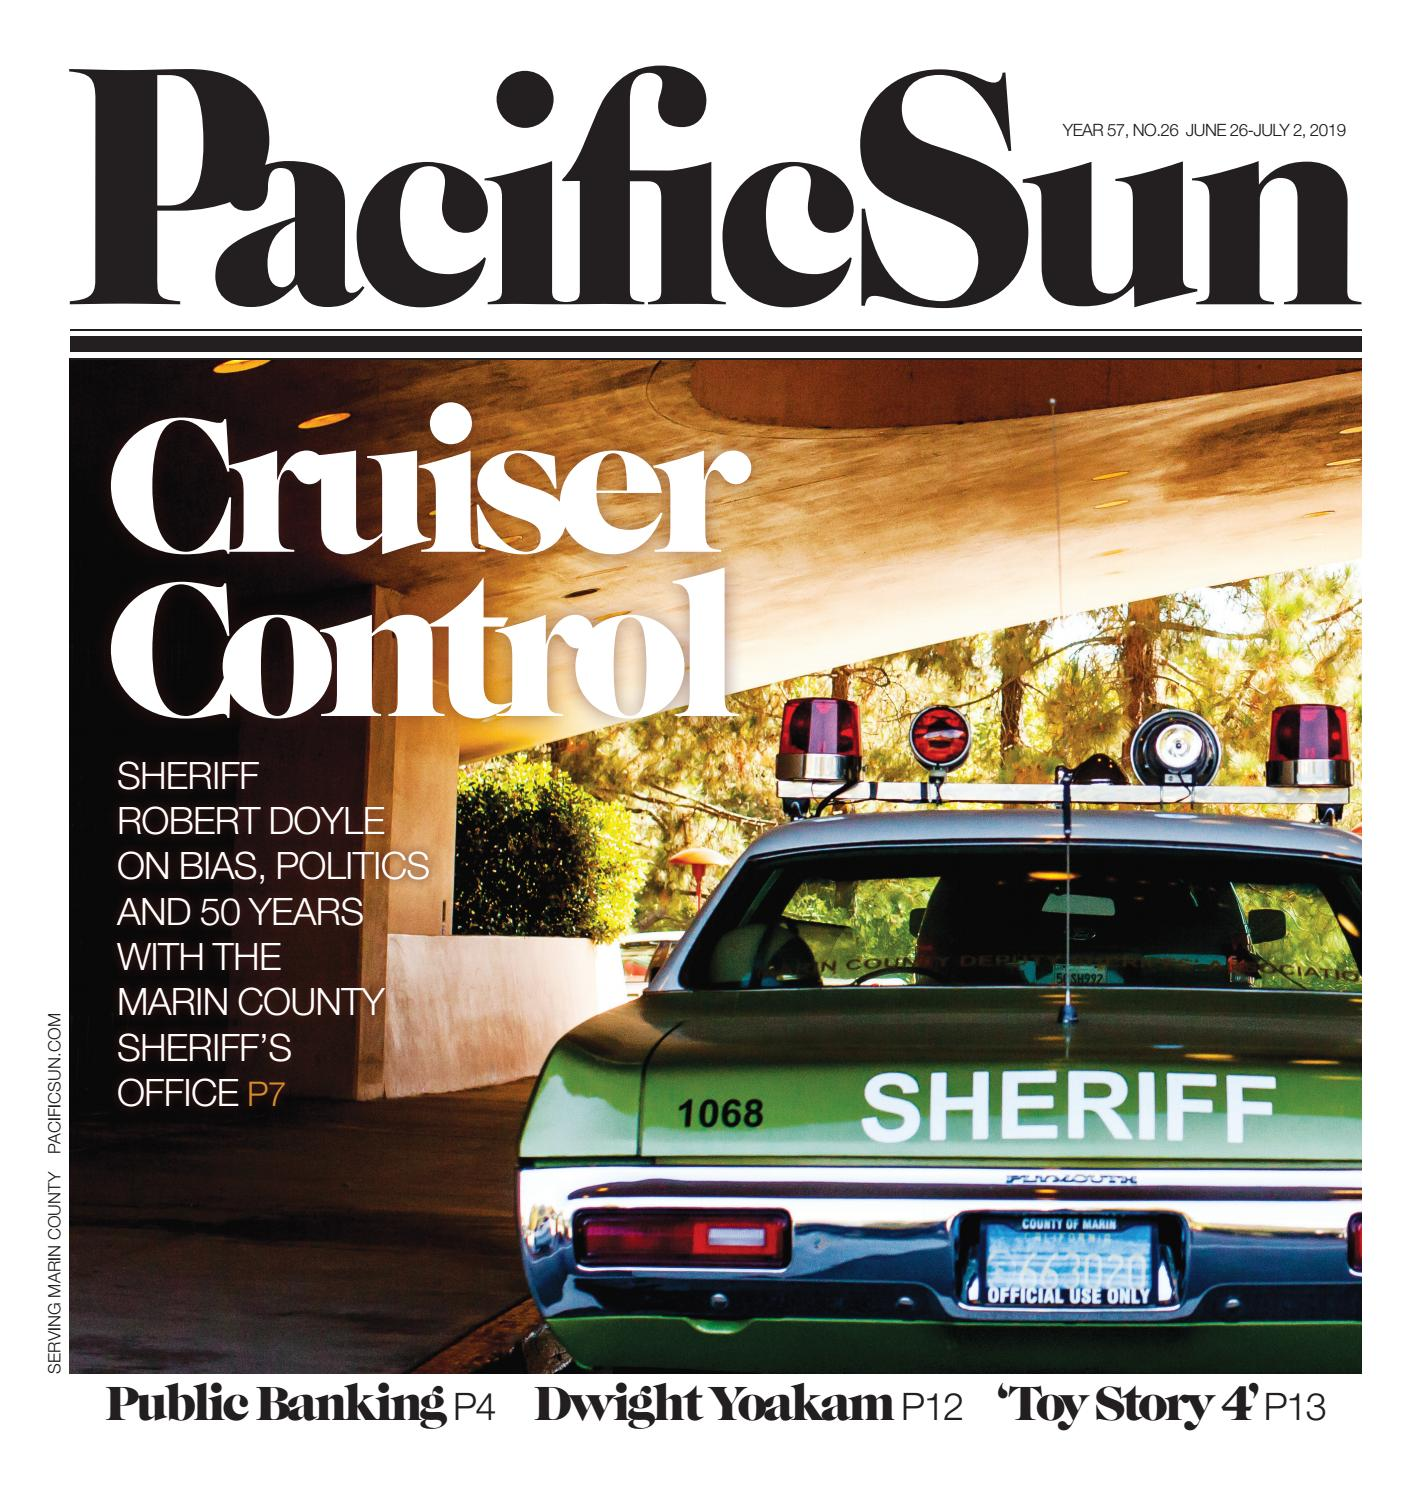 c904c2552435 Pacific Sun June 26-July 2, 2019 by Metro Publishing - issuu